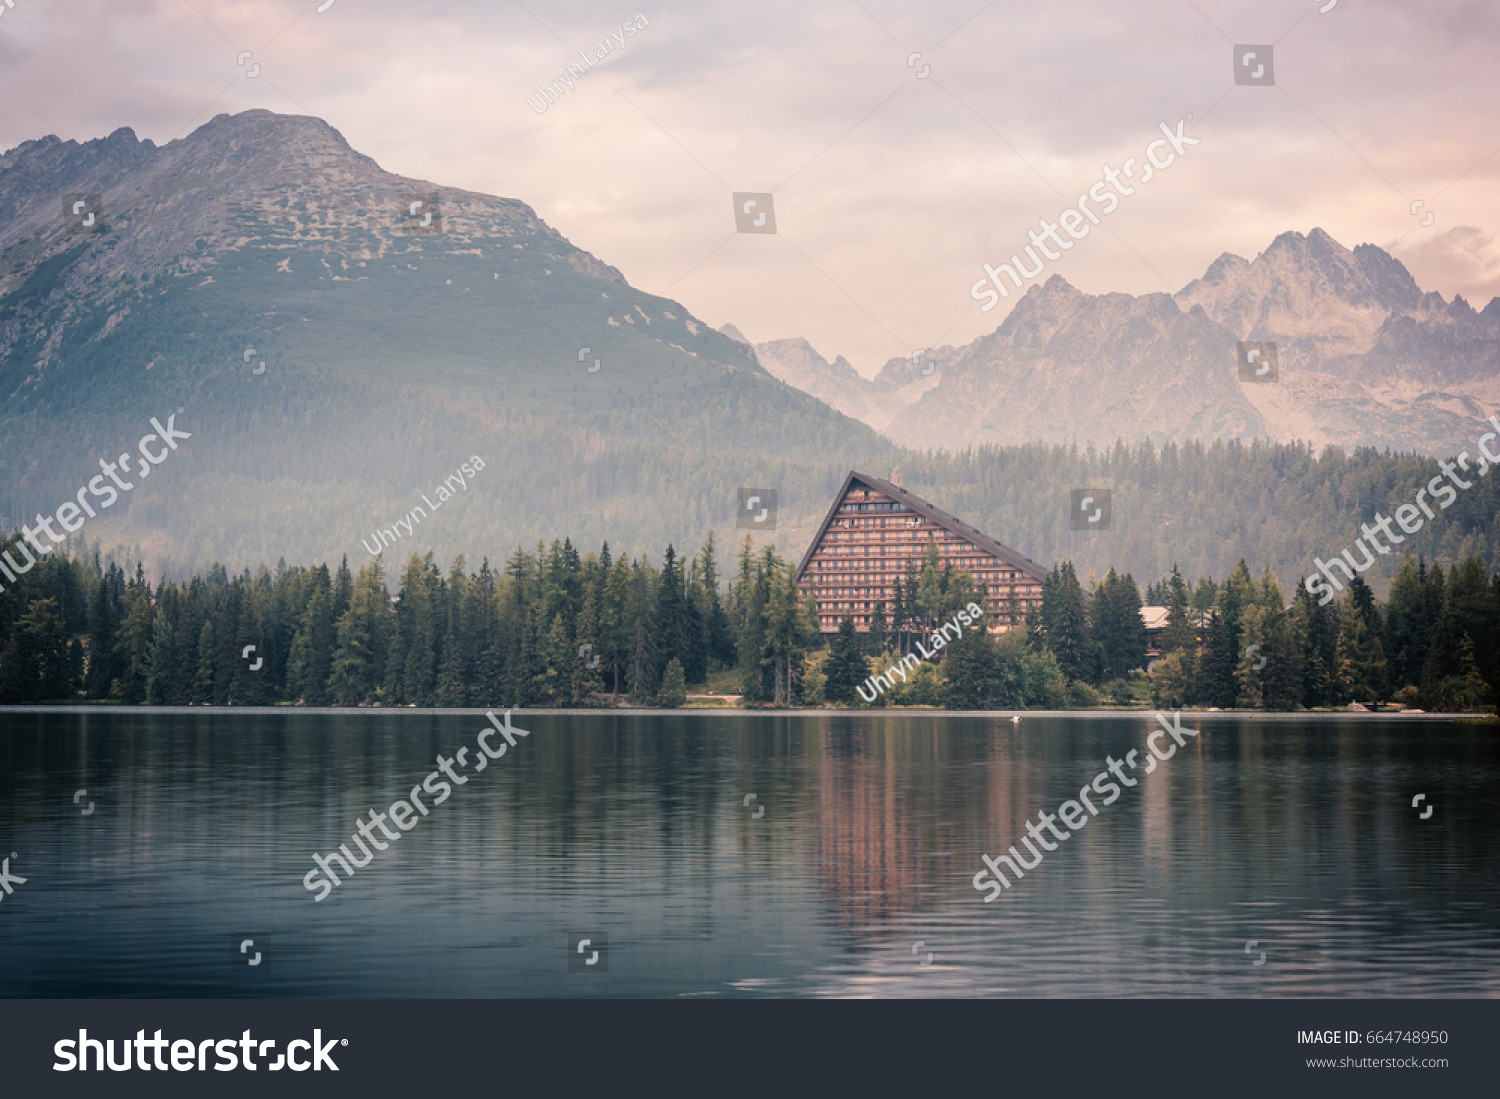 Great Wallpaper Mountain Vintage - stock-photo-beautiful-landscape-vintage-image-for-wallpaper-mountains-and-water-lake-strbske-pleso-famous-664748950  Pictures_85948.jpg